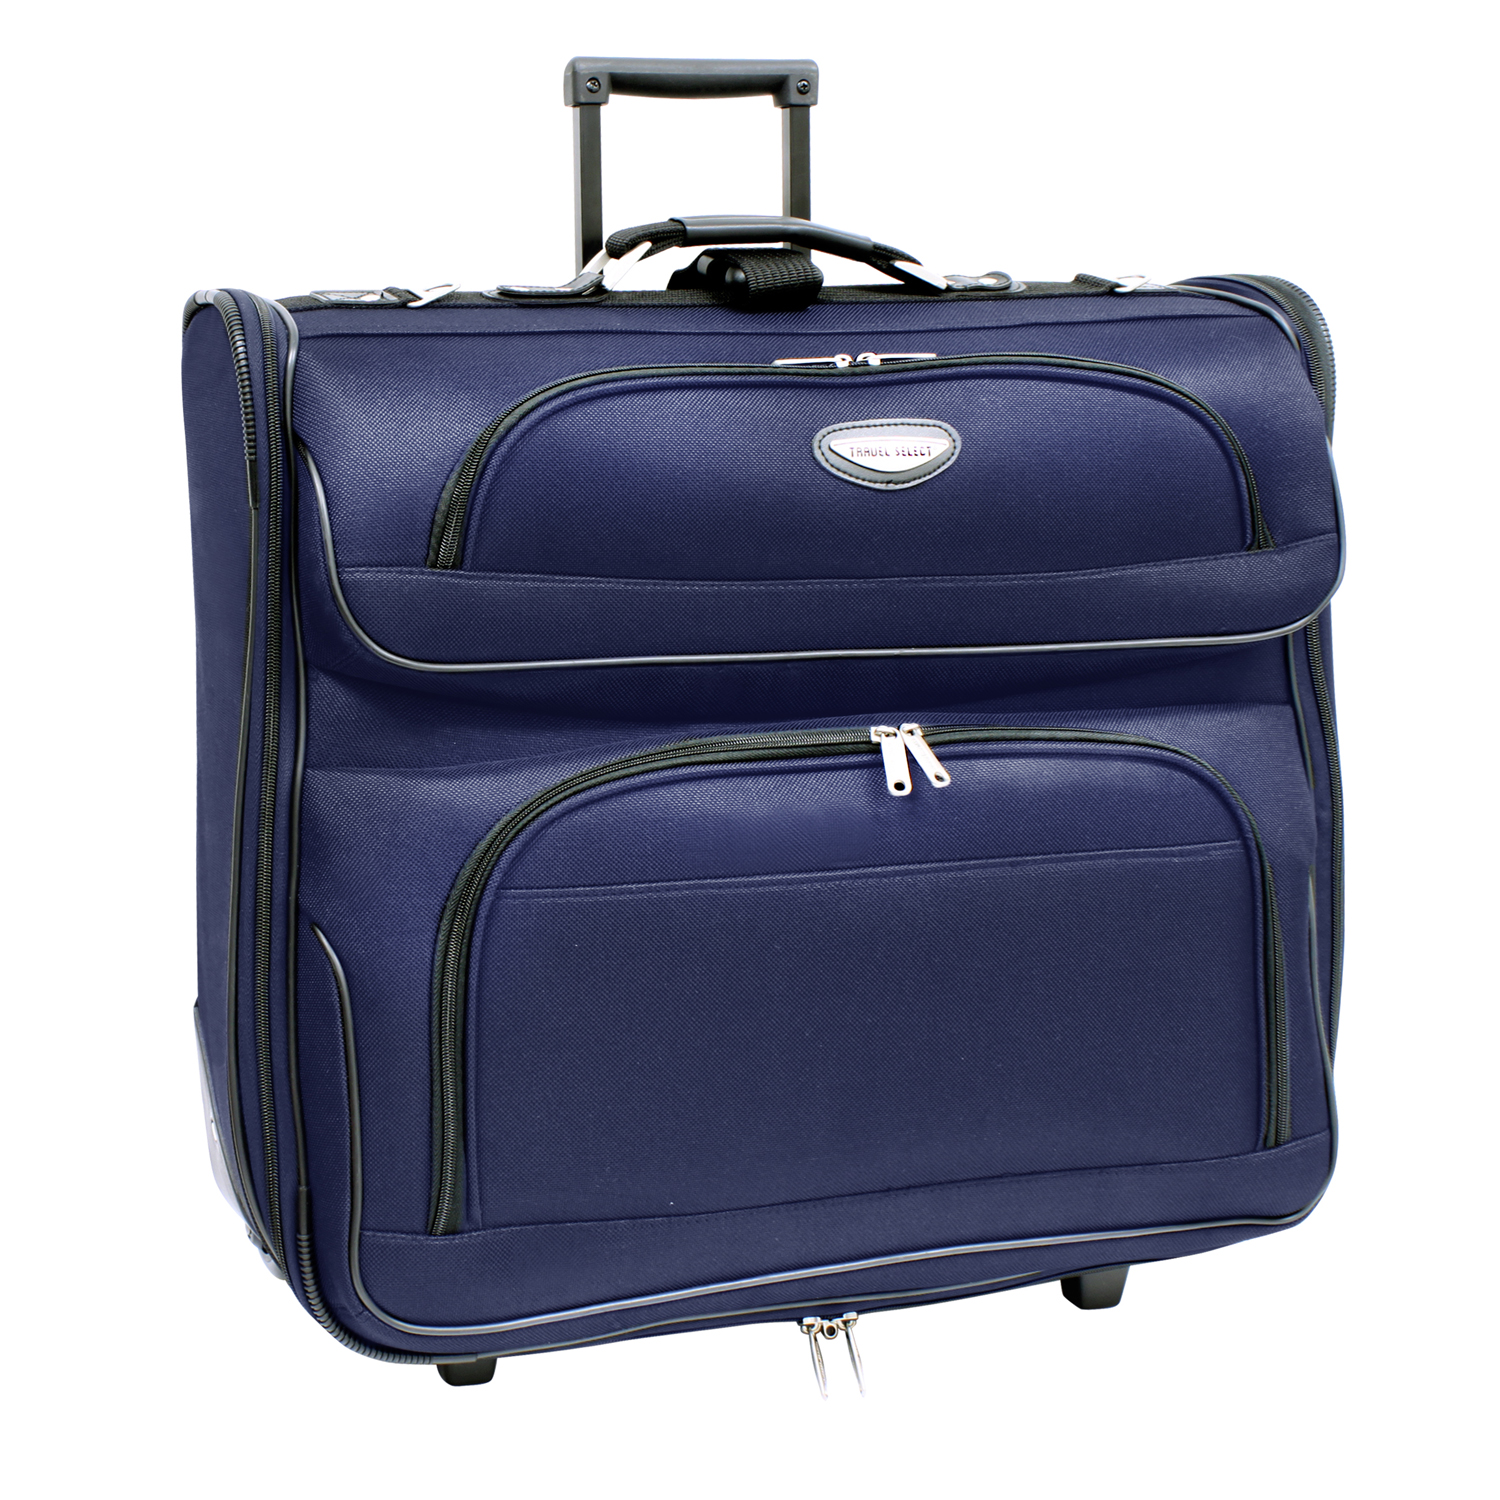 Traveler's Select Amsterdam Rolling Garment Bag